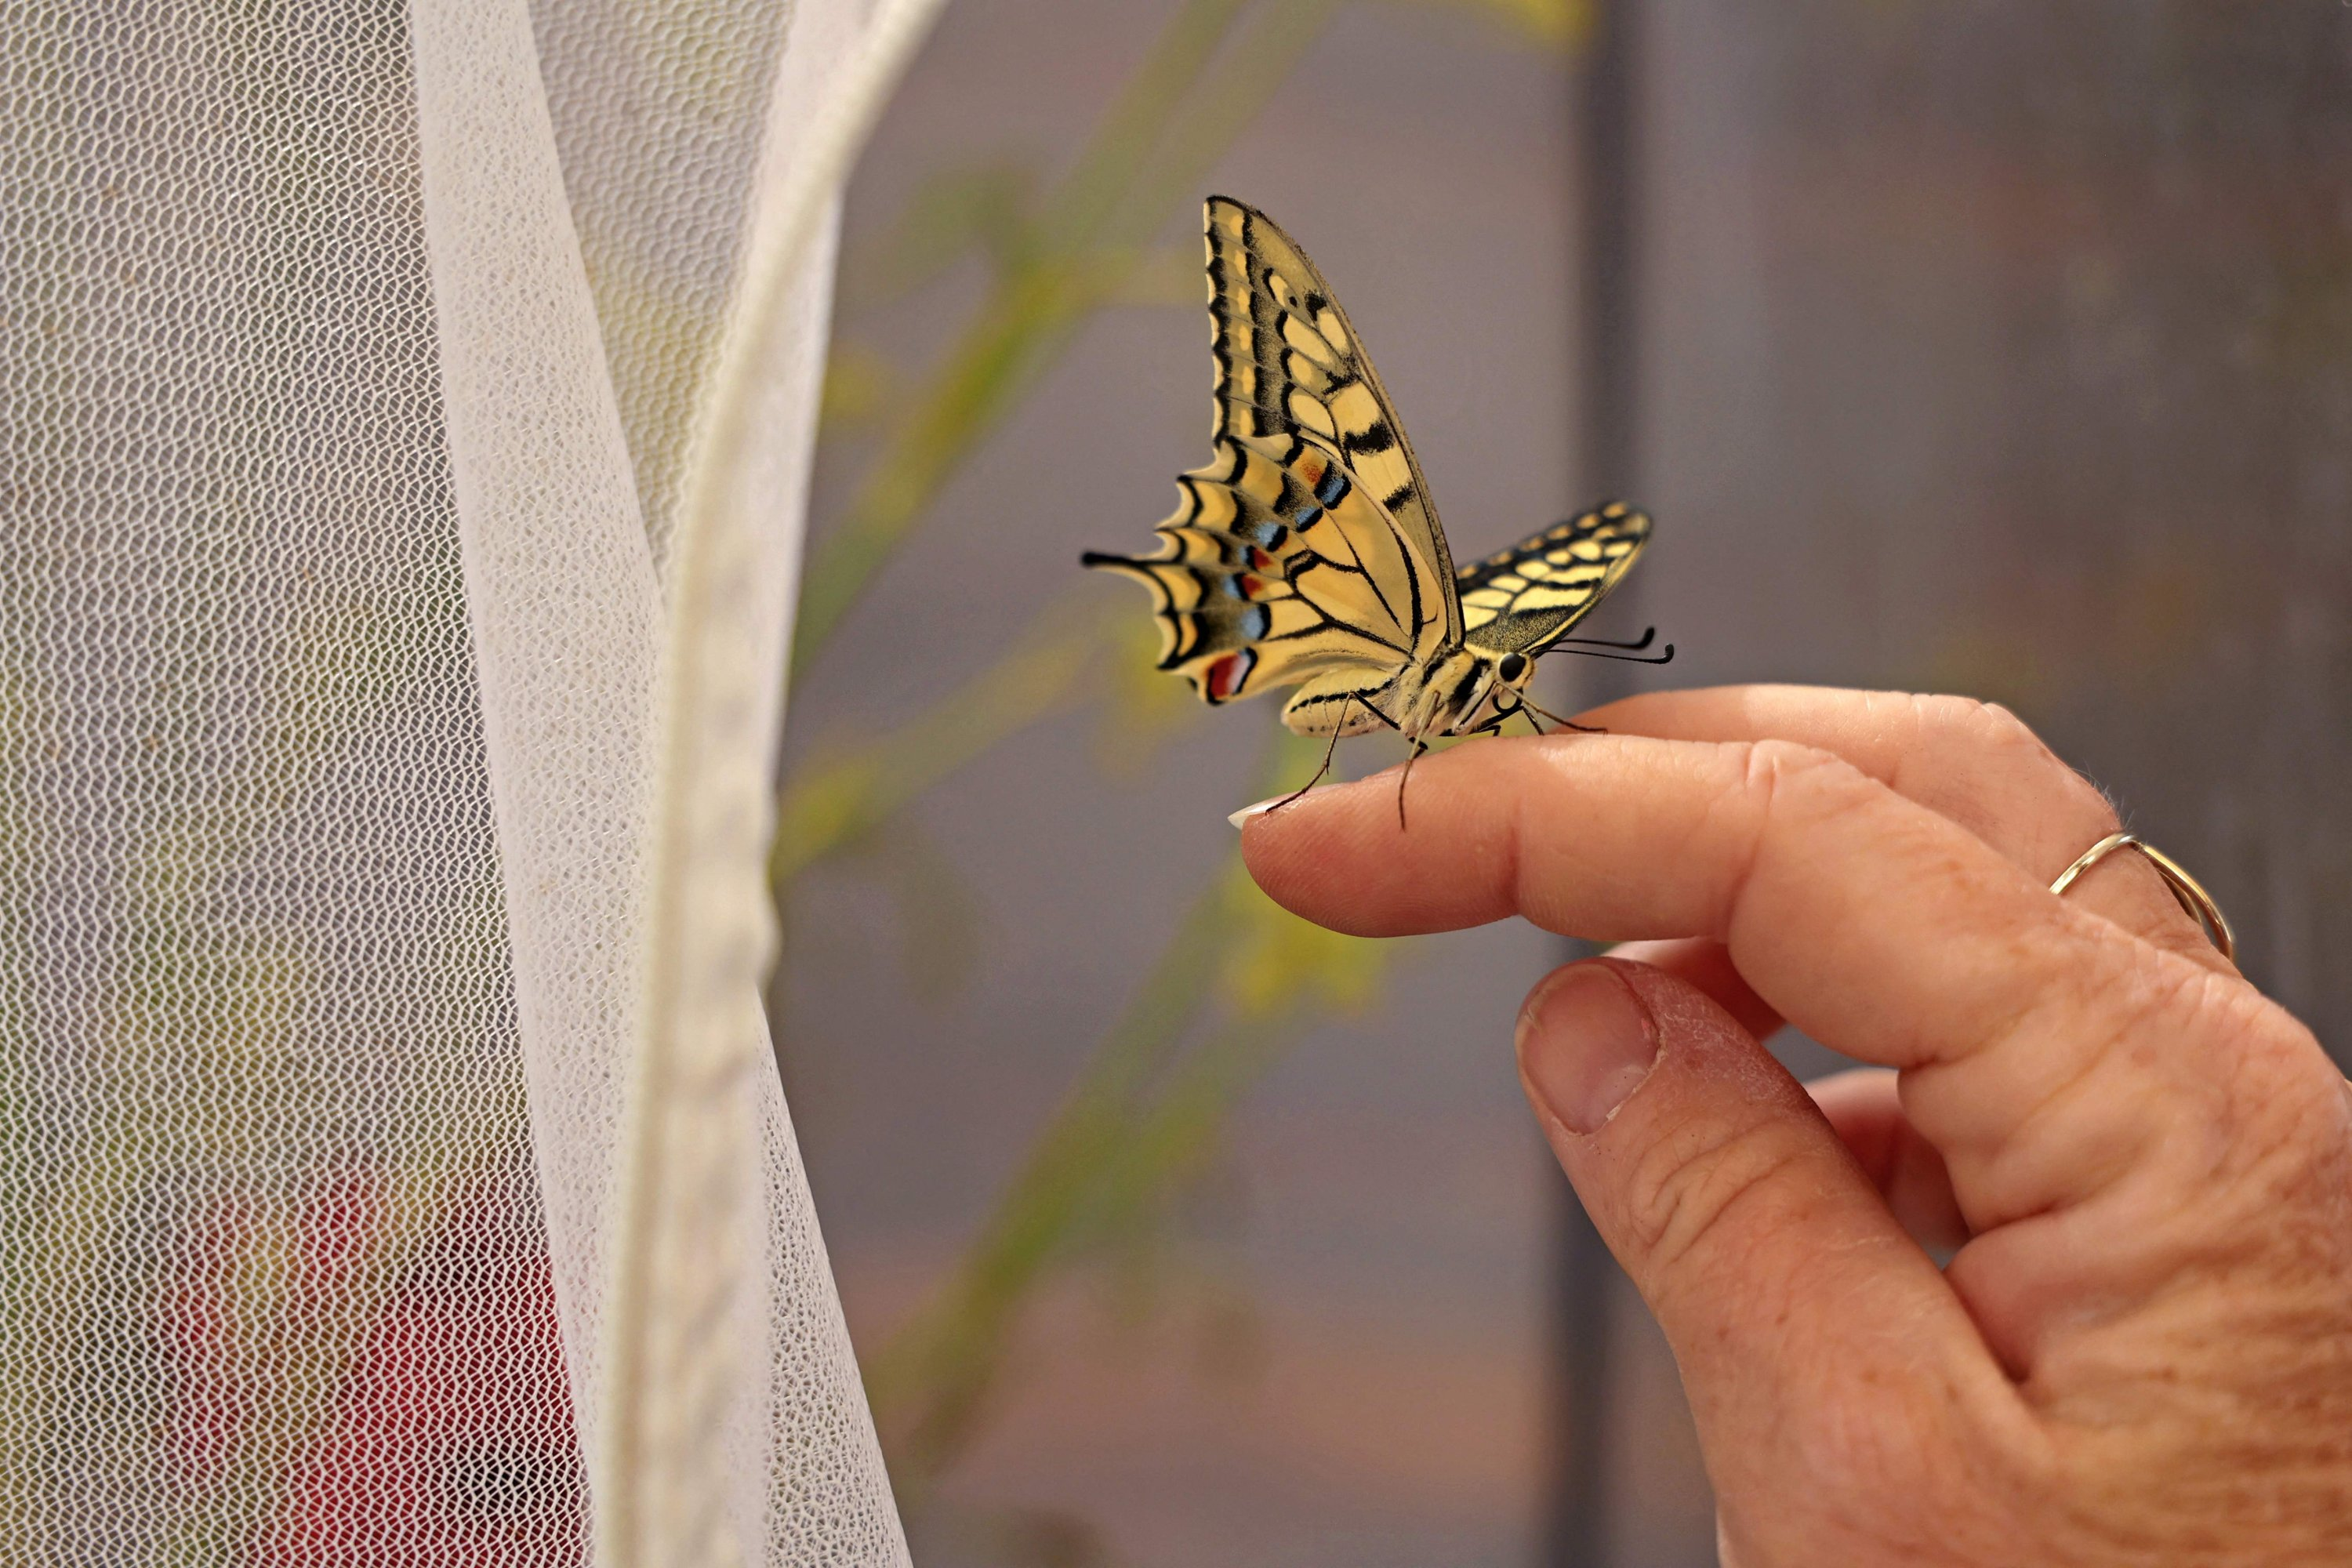 Owner Miranda Tringis takes out a butterfly, known as the eastern tiger swallowtail, from a mesh cage  used for raising butterflies at Cyherbia Botanical Park in the Cypriot village of Avgorou in southwestern Famagusta District, Cyprus, June 8, 2021. (AFP Photo)